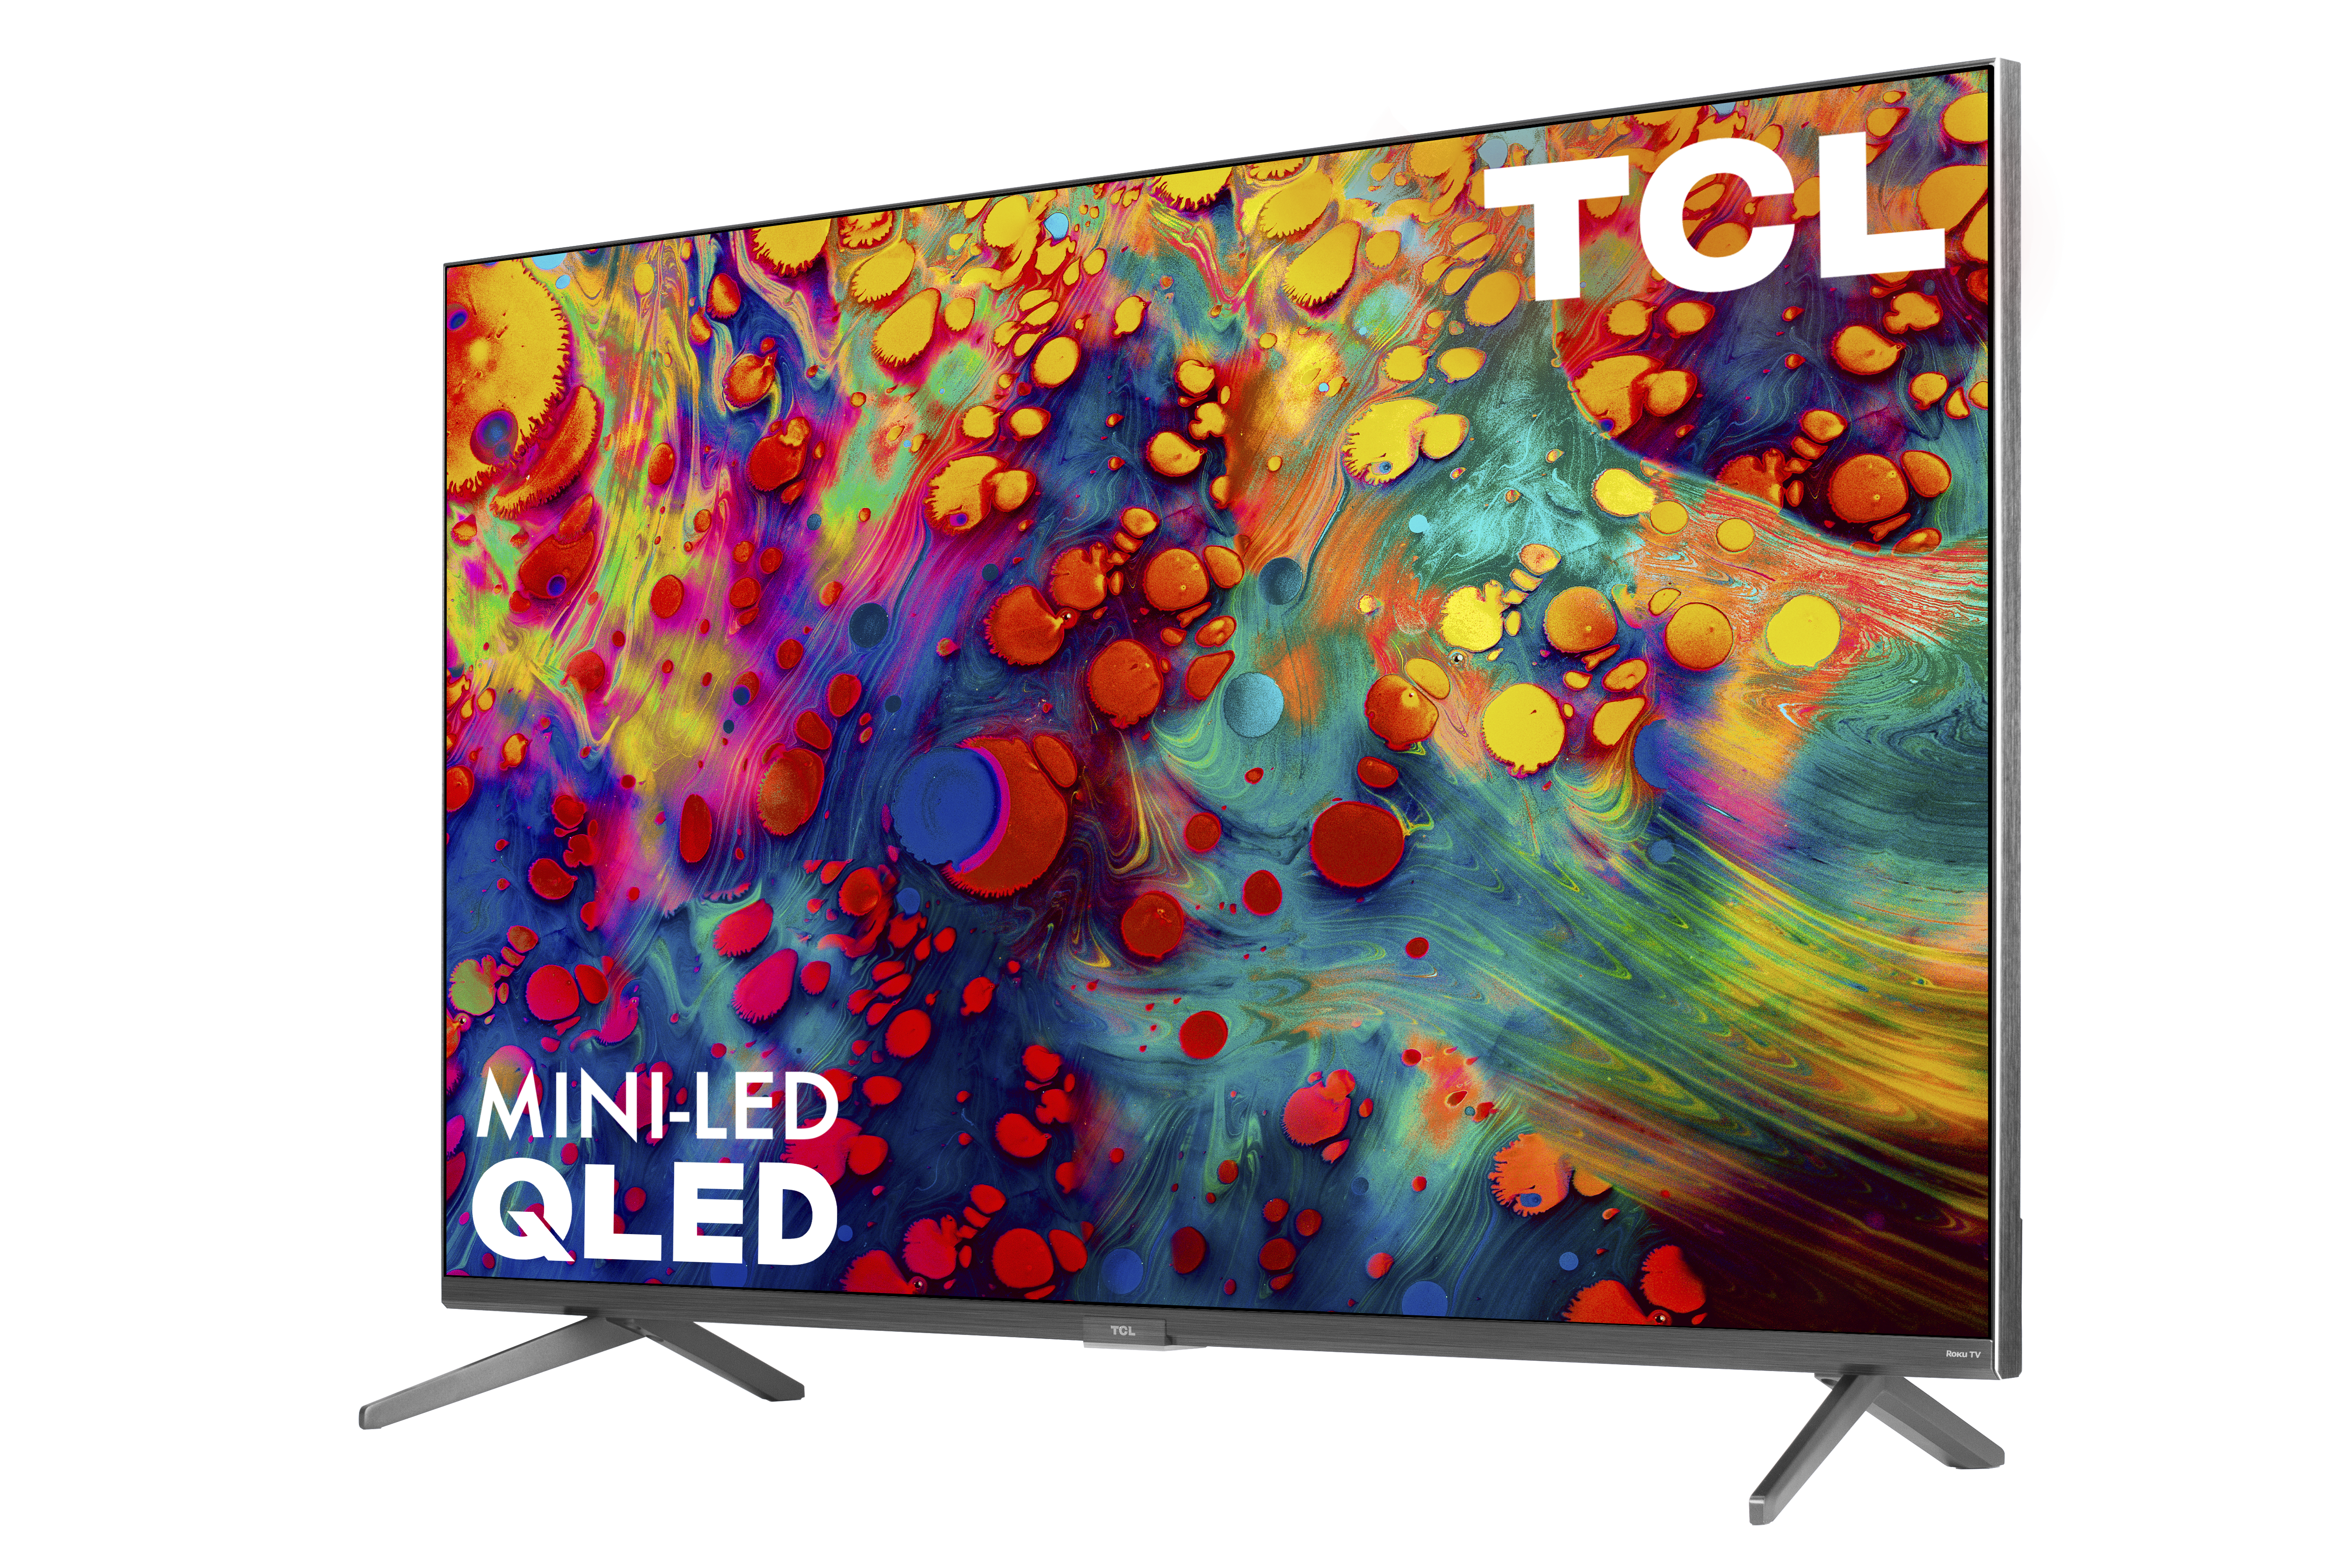 TCL 6-Series Roku TVs start at 0, deliver even better picture